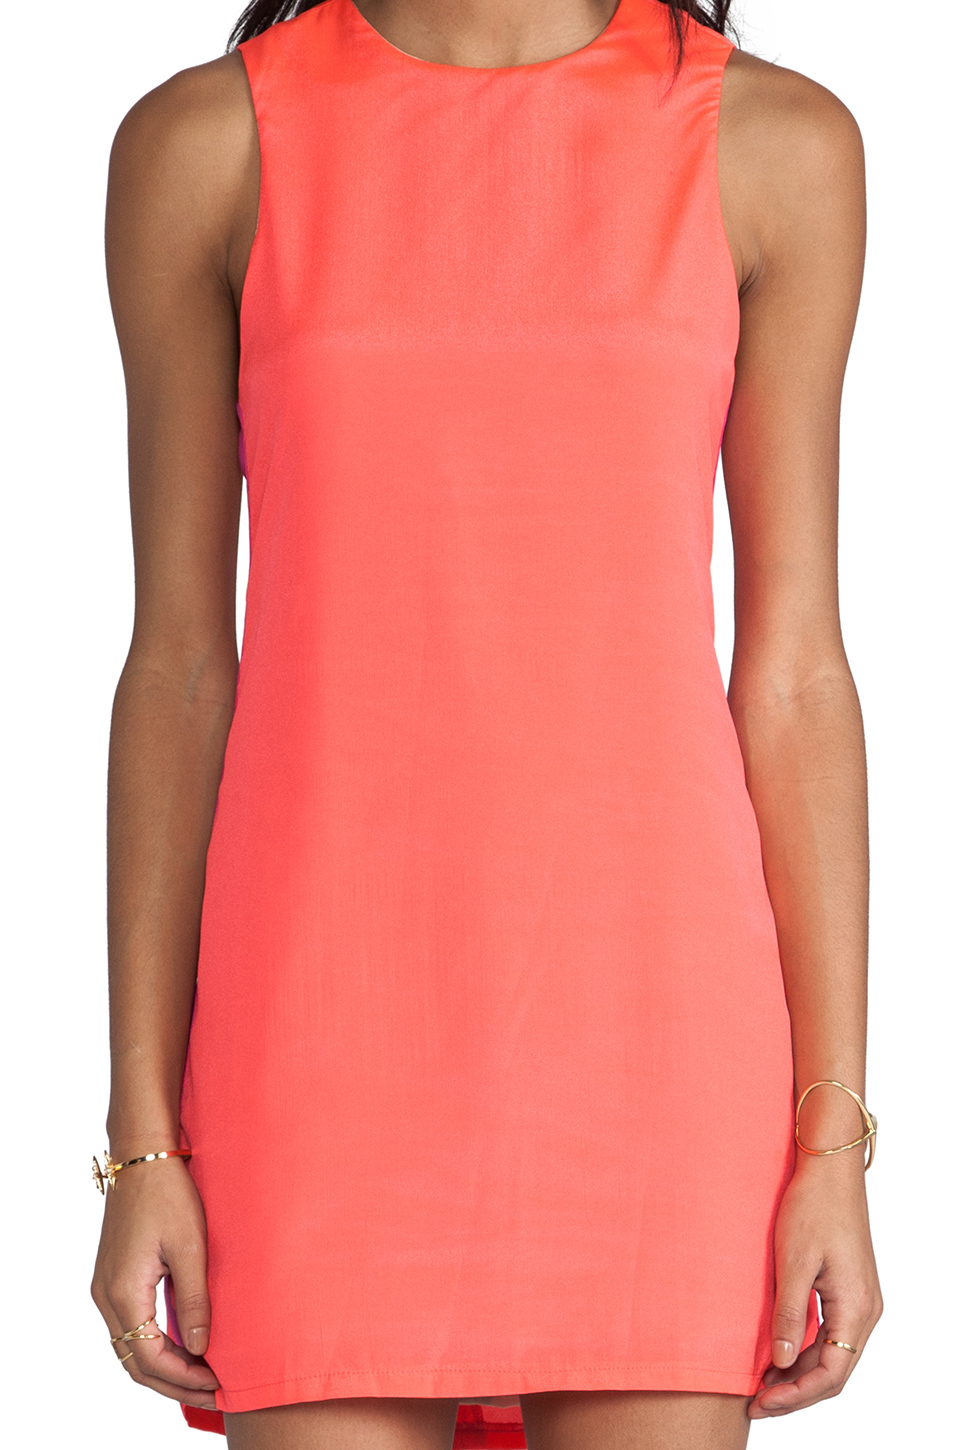 Naven Sporty Twiggy Dress in Neon Salmon/Pop Pink